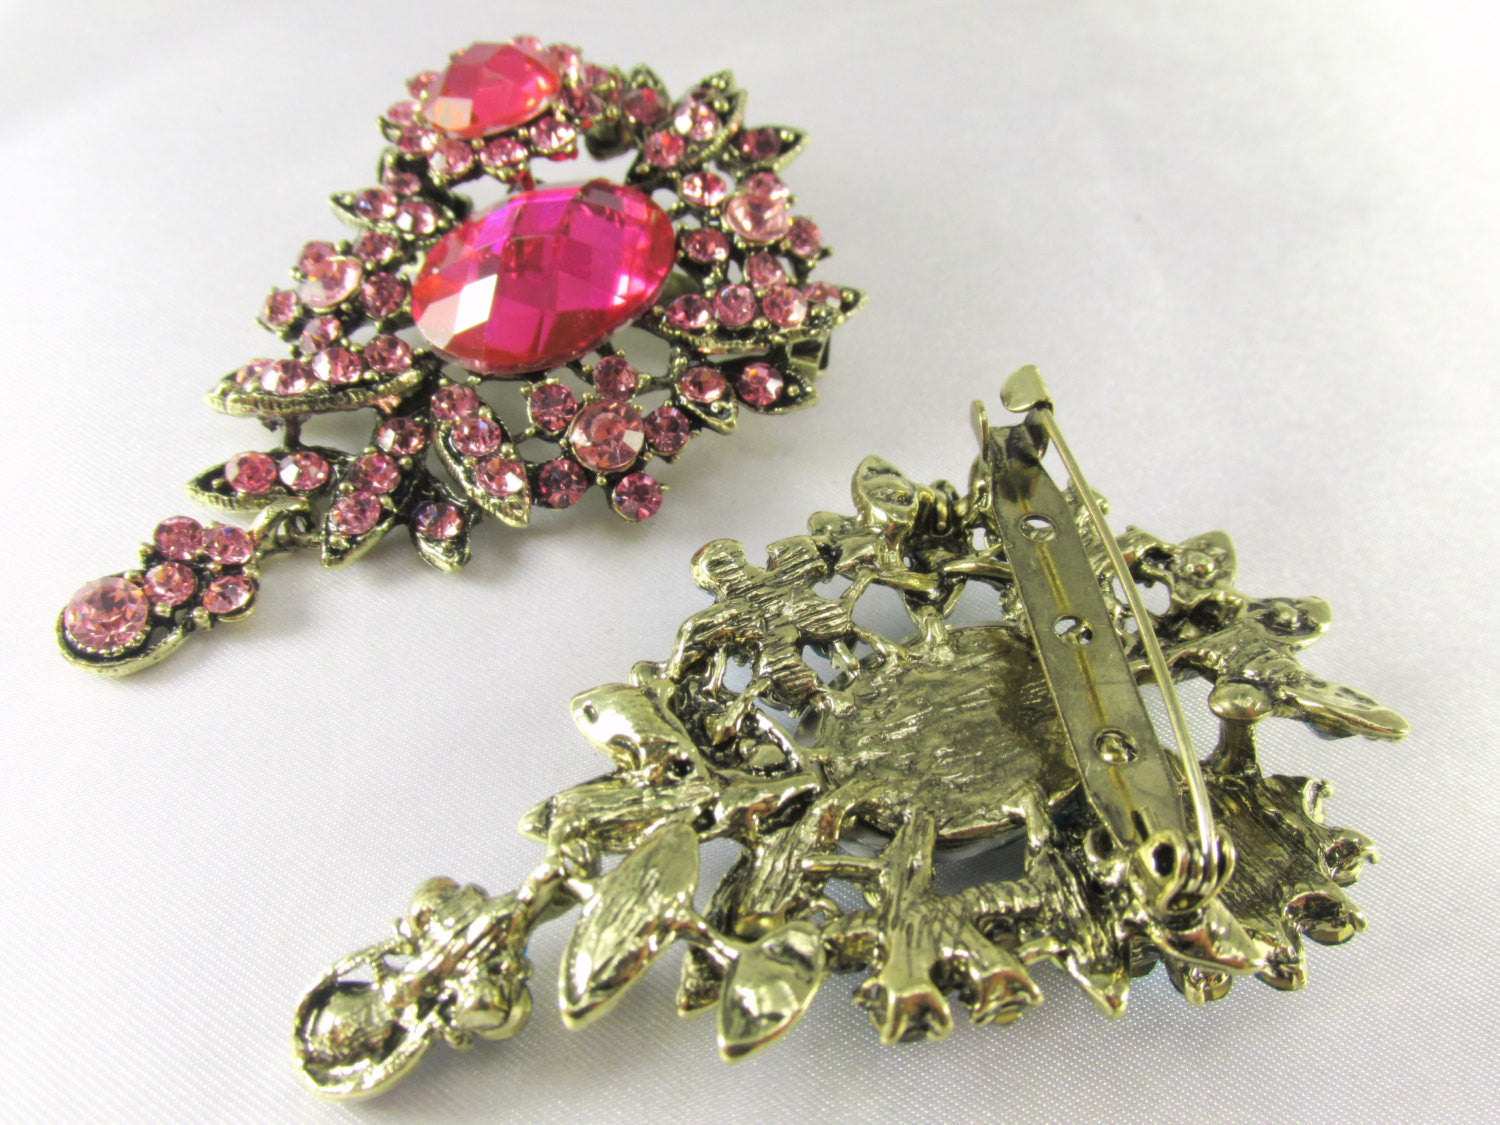 Pink Teardrop 2.75 Inch Brooch in Antique Brass - Odyssey Cache - 3